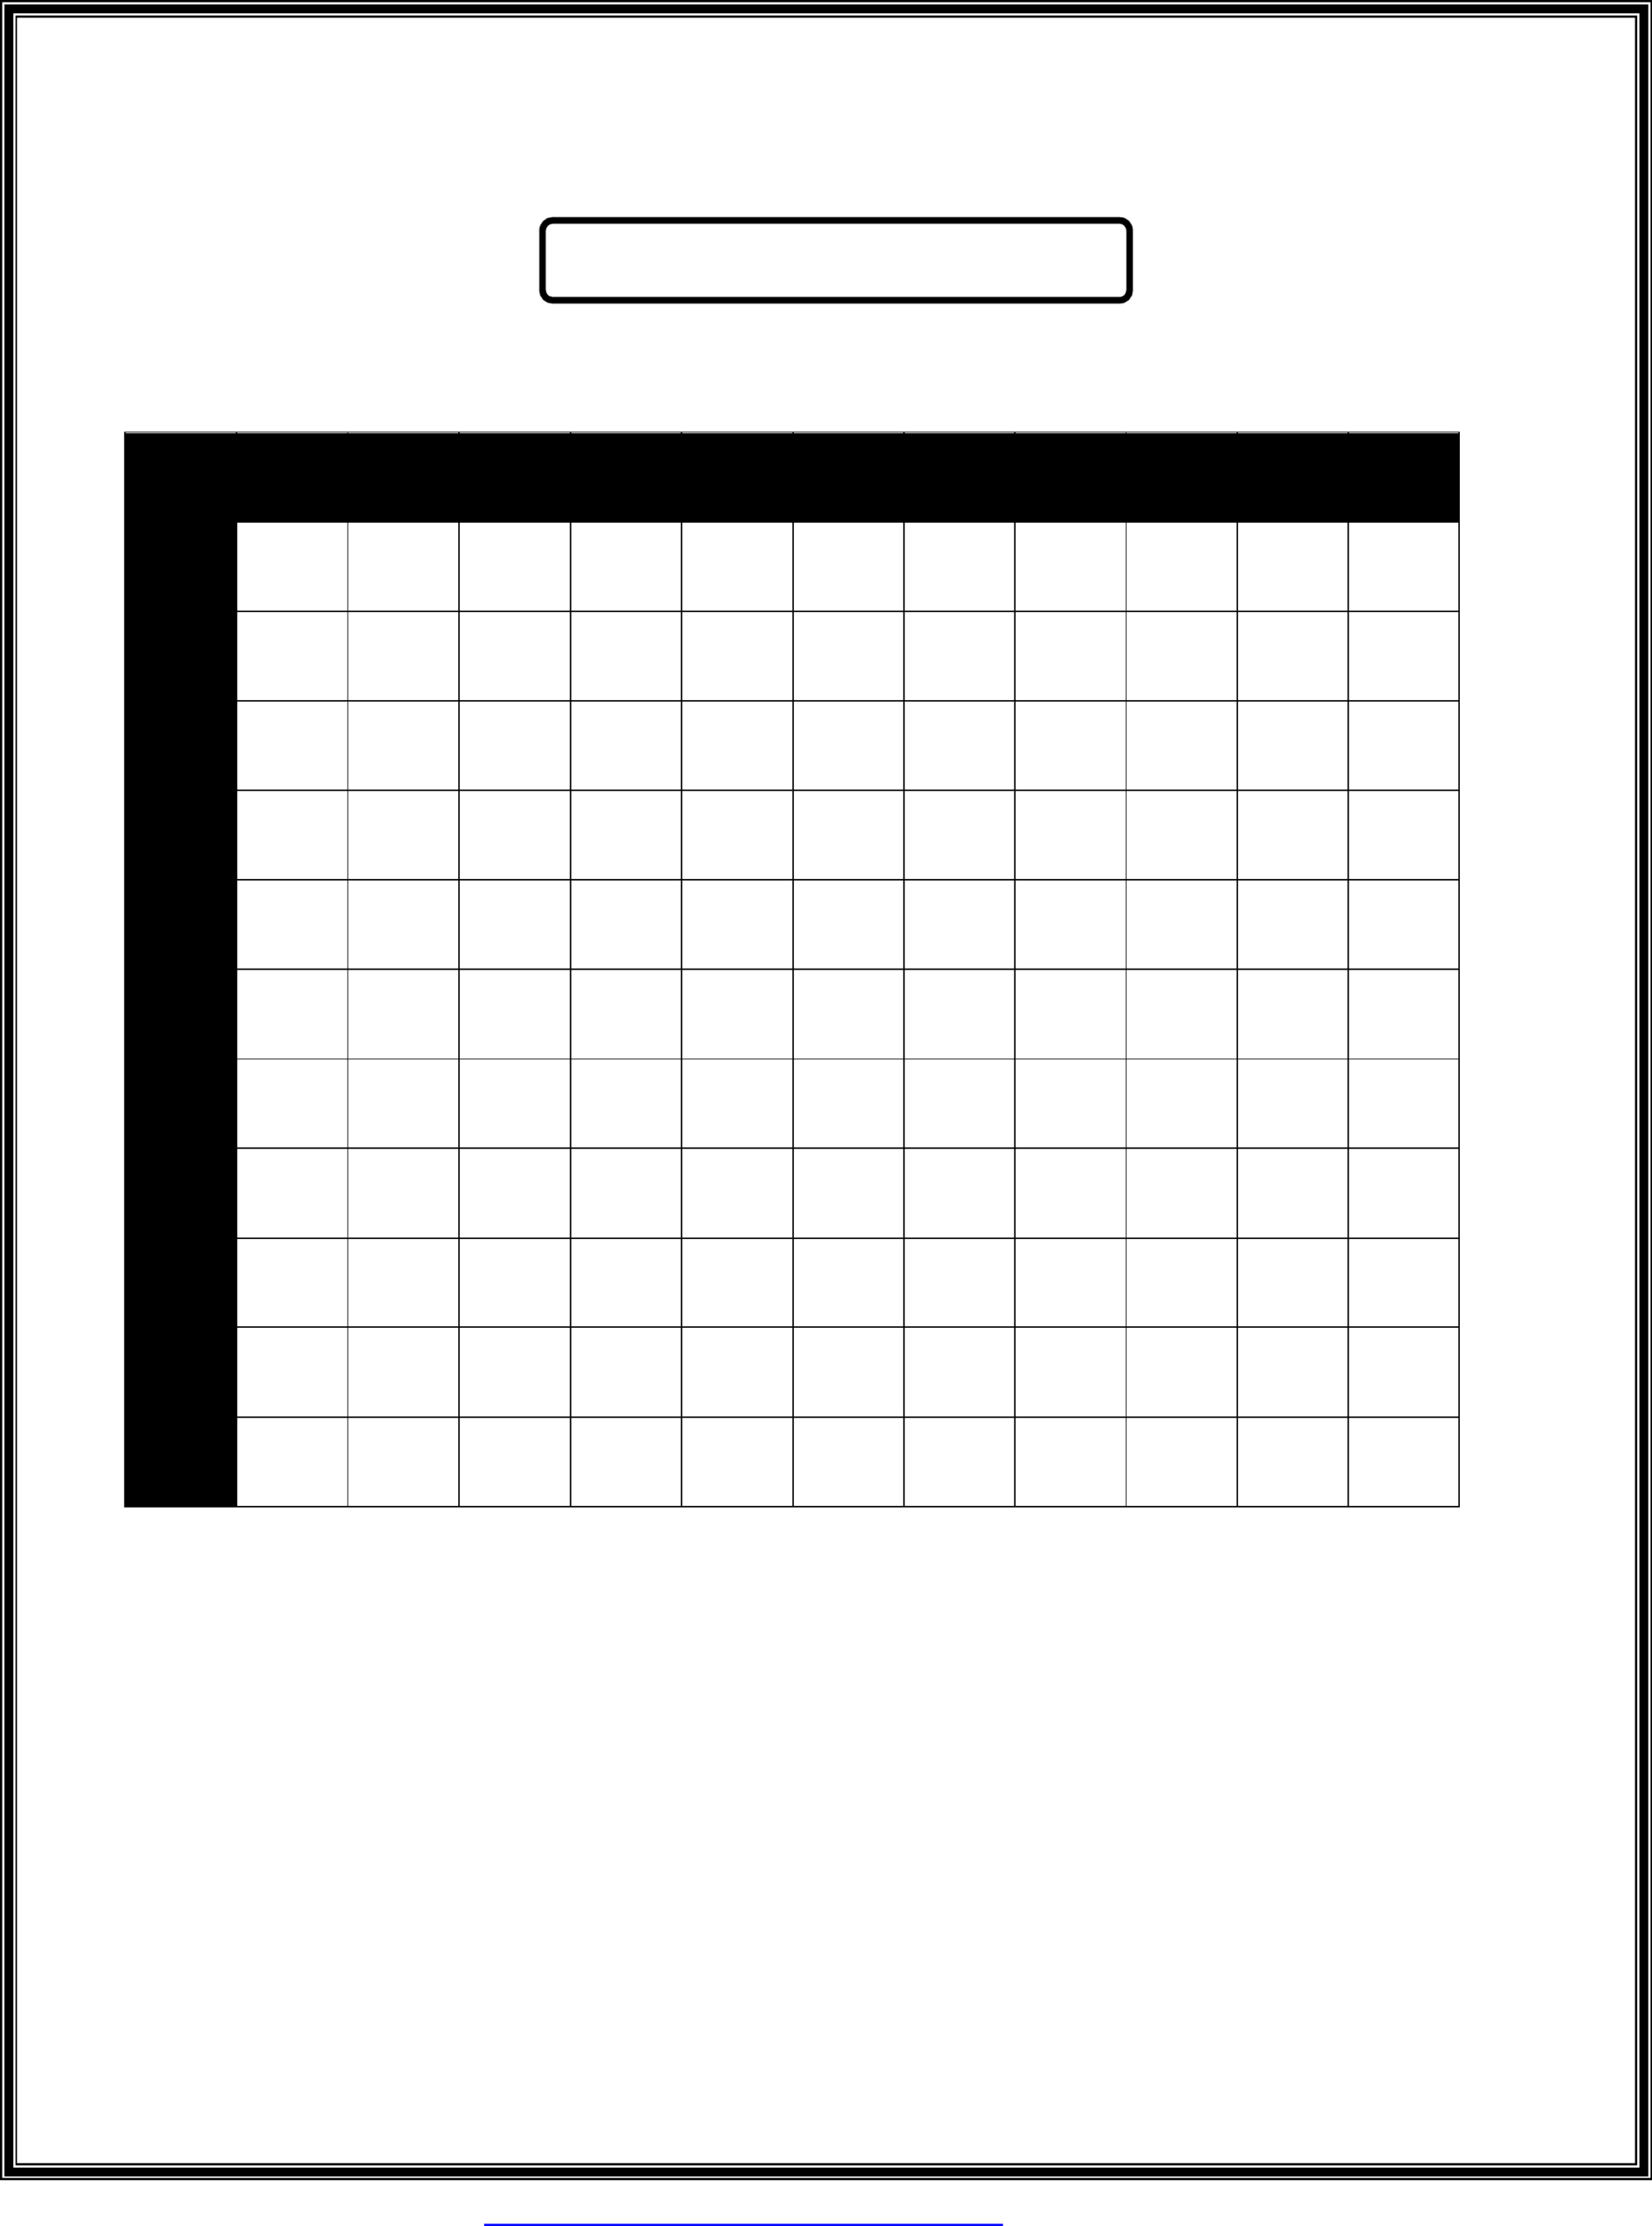 Blank Multiplication Chart With Answers Free Download with Free Printable Empty Multiplication Chart